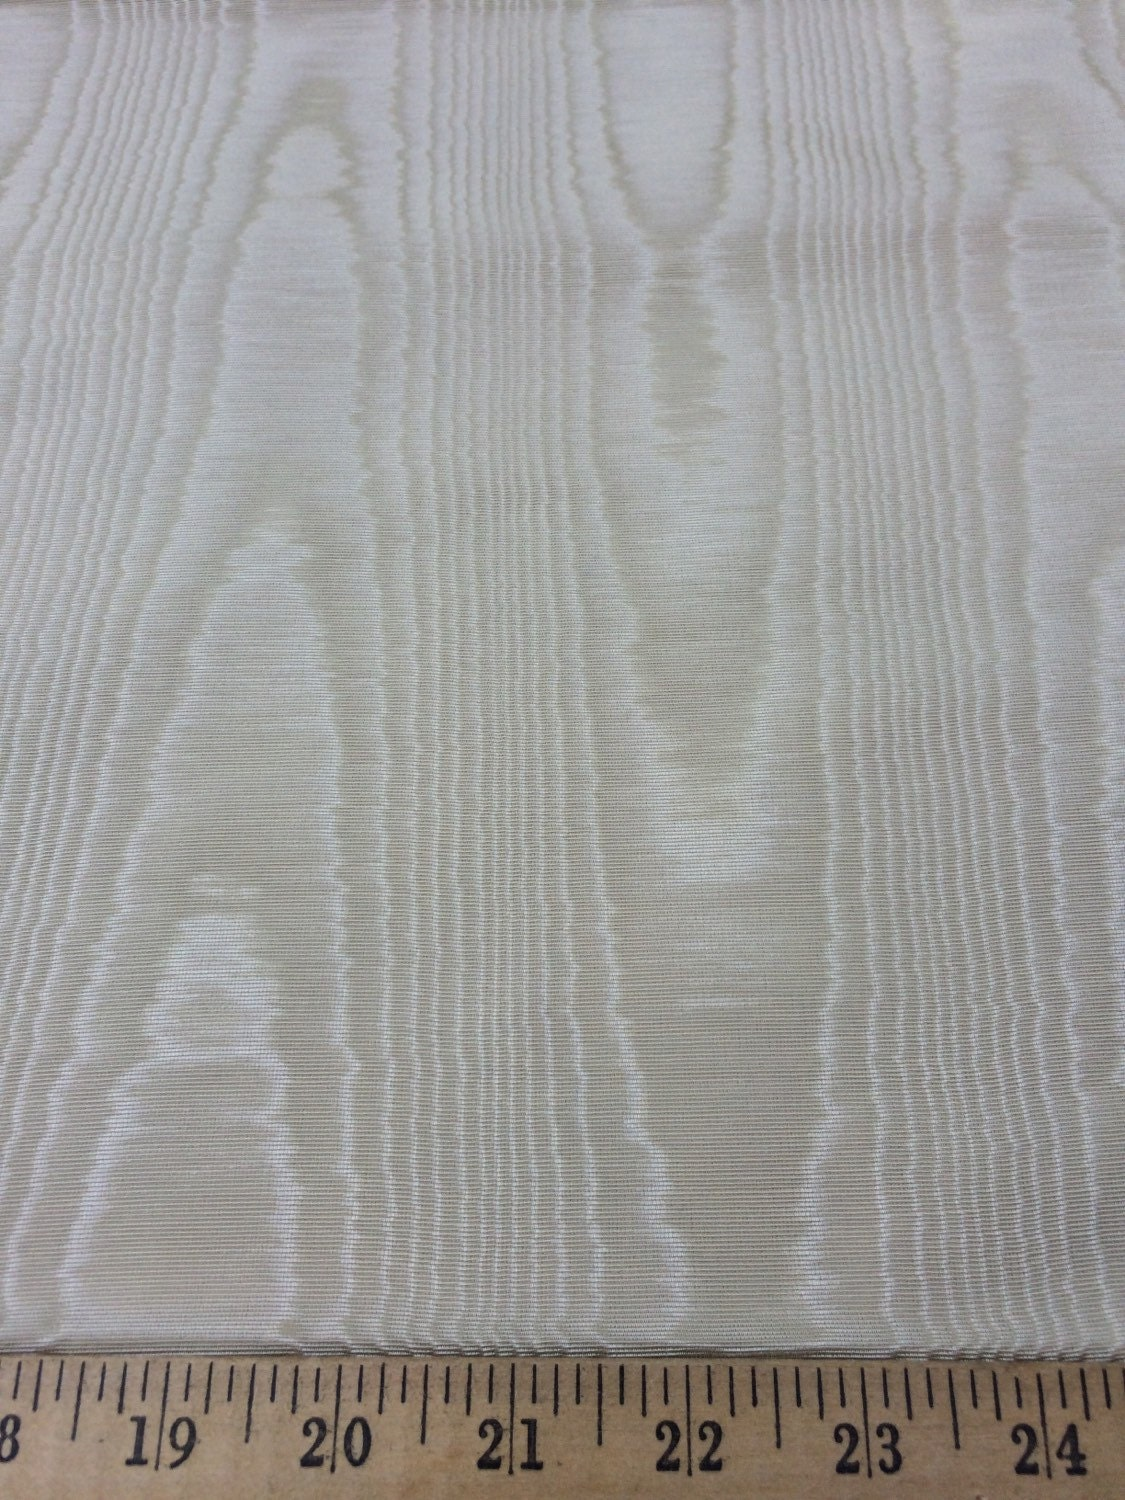 Light Beige Moire Bengaline Faille fabric 55 wide sold